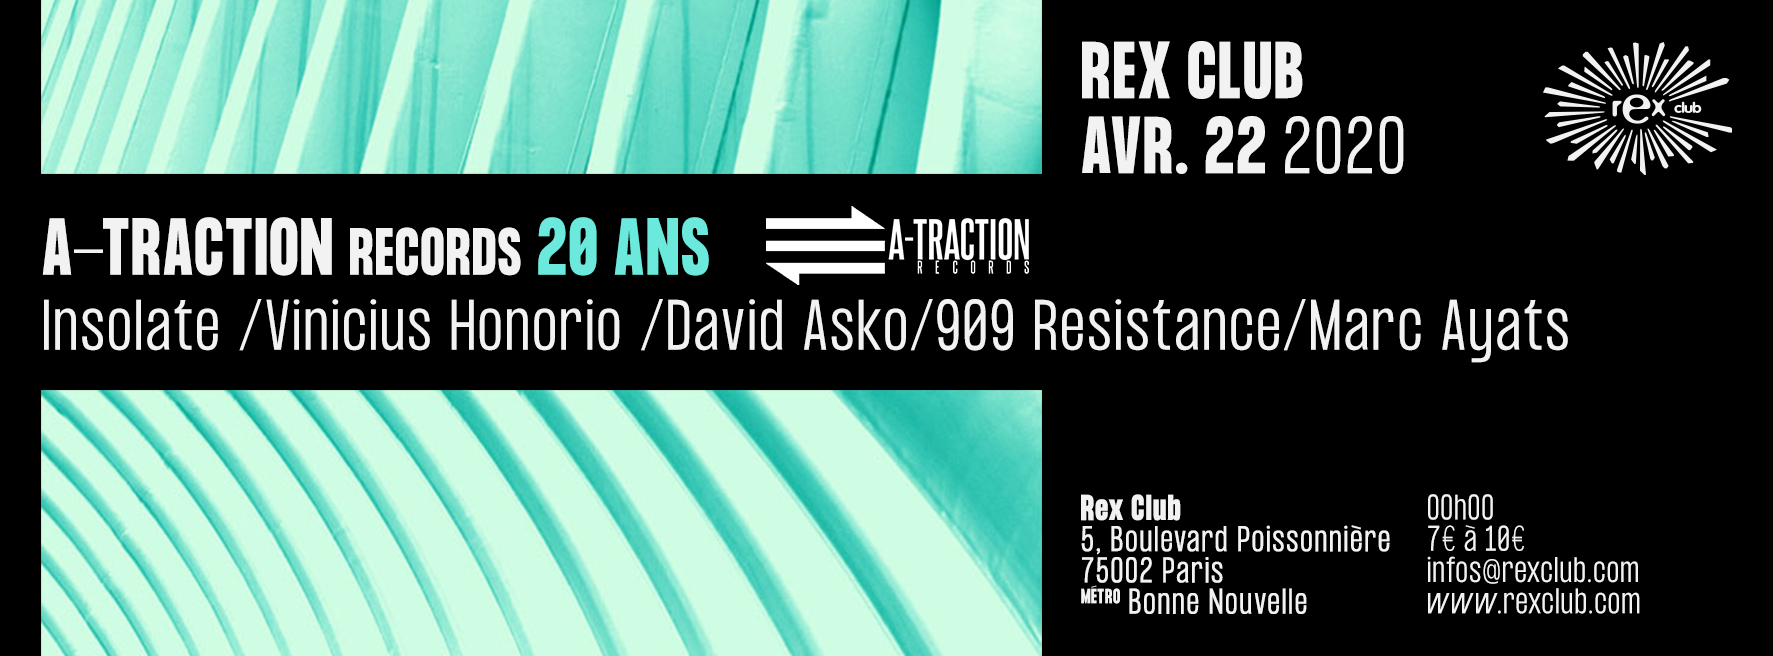 A-Traction Records 20 Years: Insolate, Vinicius Honorio, 909 Resistance, Marc Ayats, David Asko